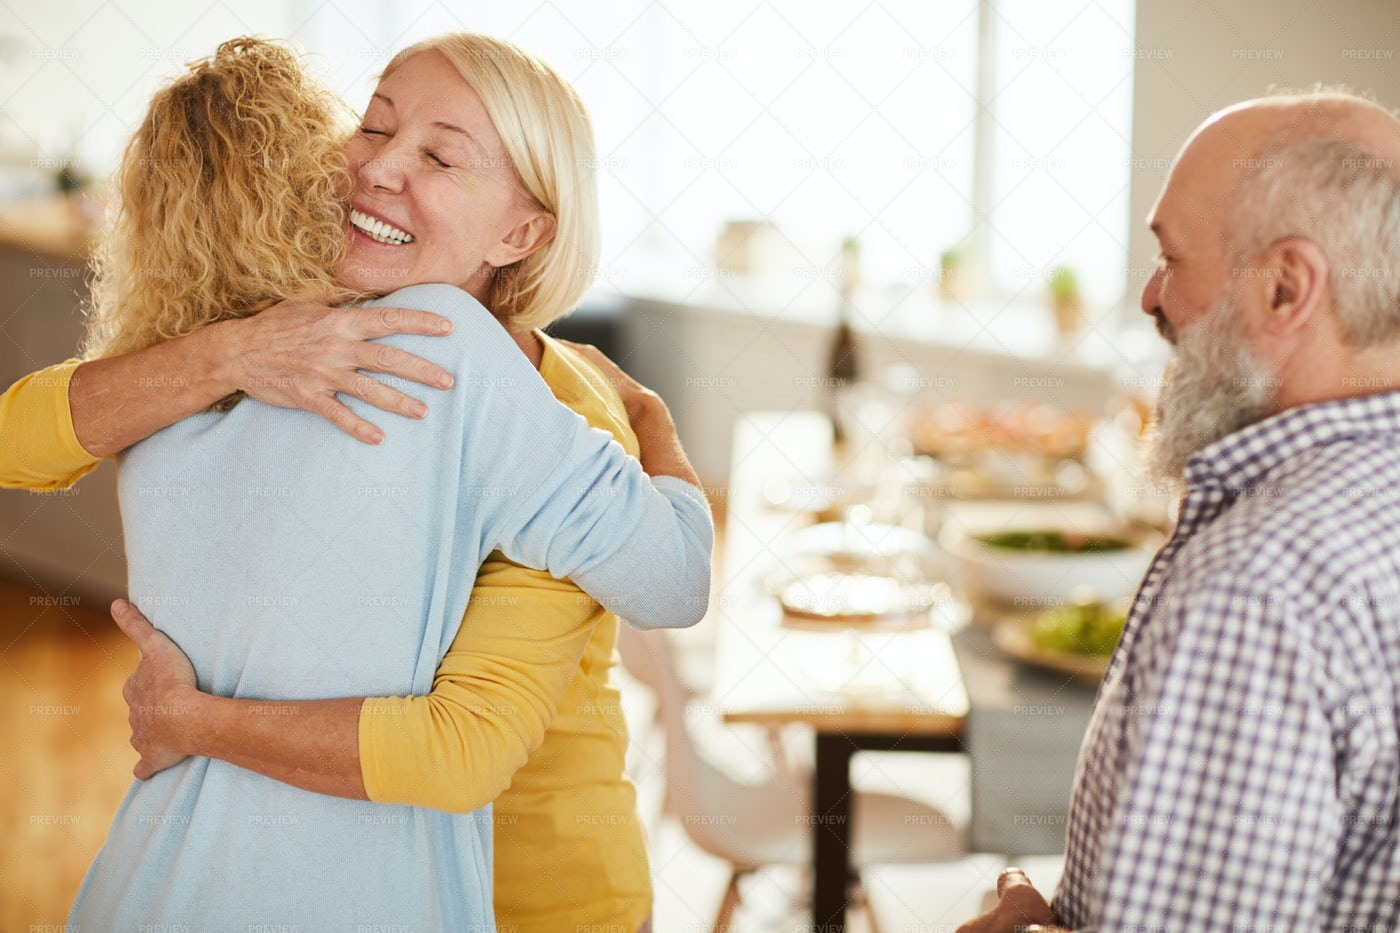 Happy Lady Glad To See Friends: Stock Photos